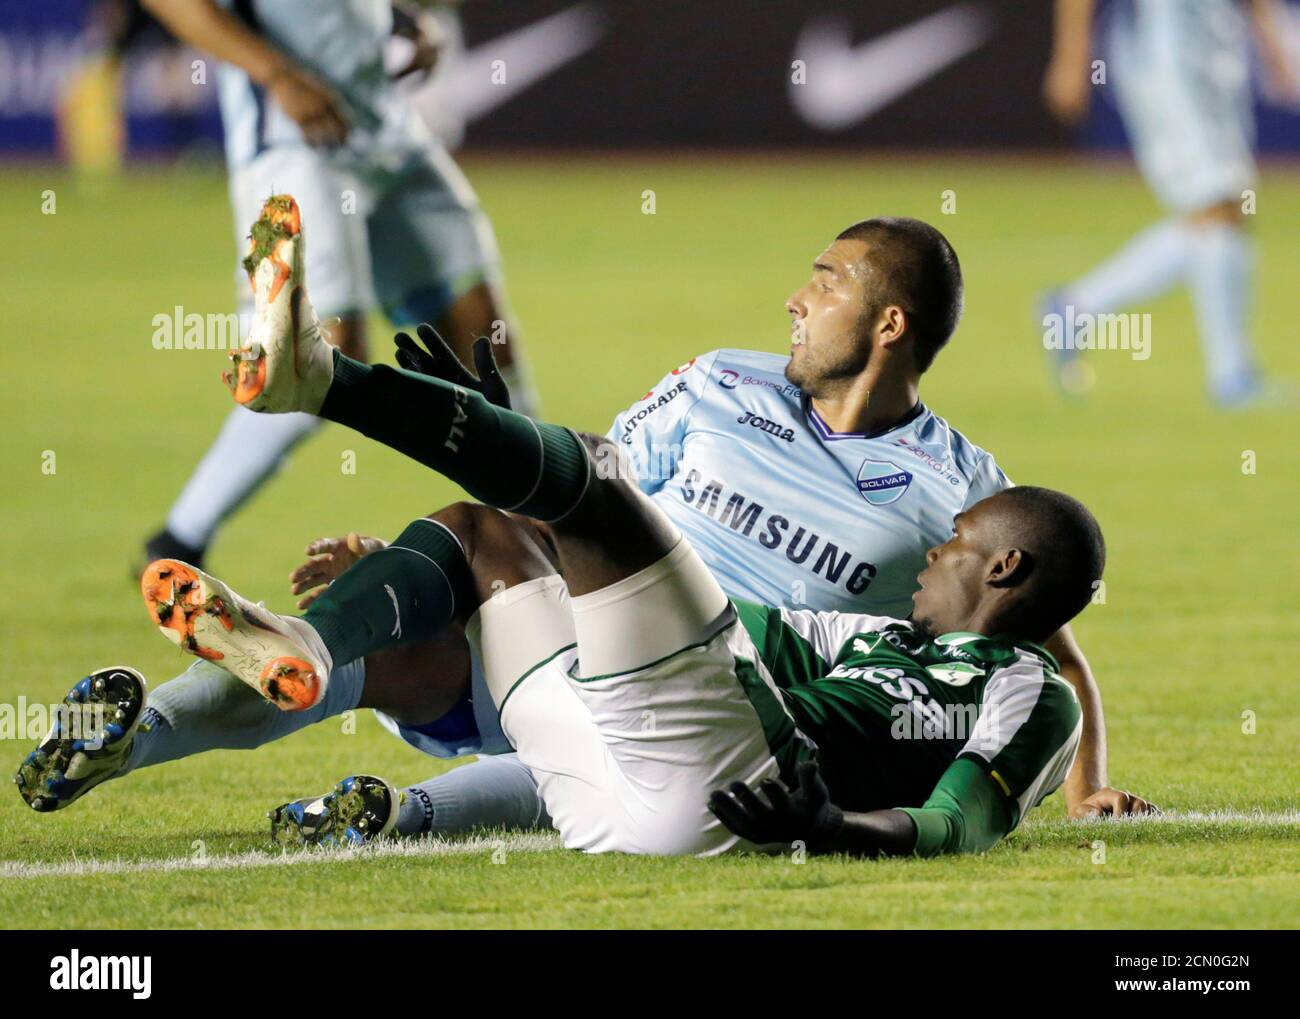 Pablo Delgado High Resolution Stock Photography And Images Alamy